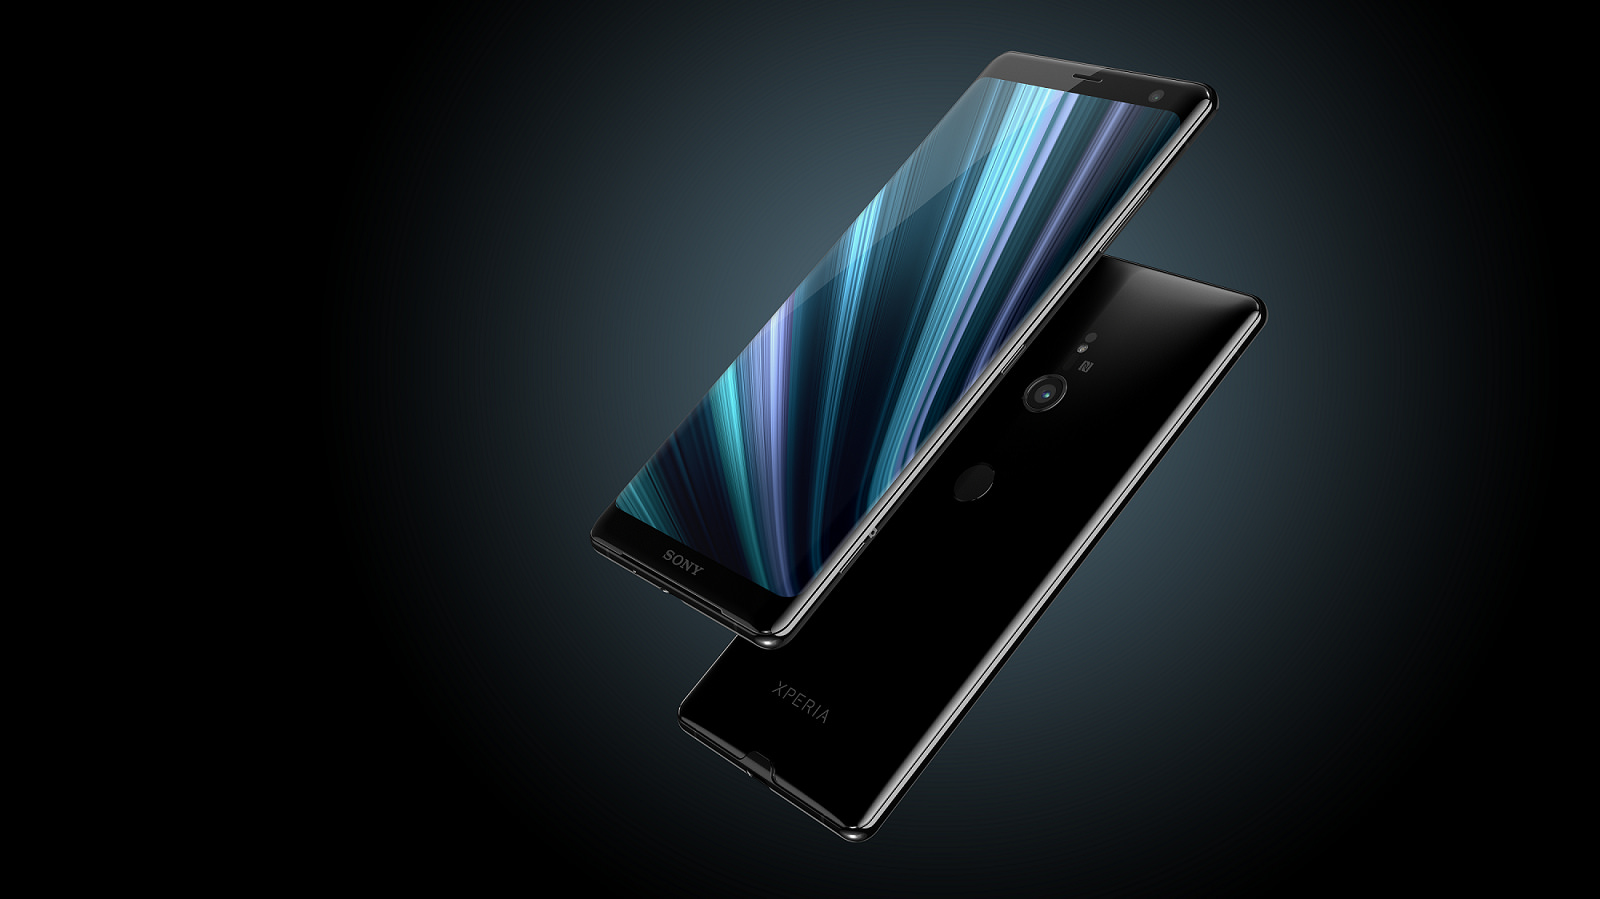 IFA 2018: Sony Xperia XZ3 launched with Android Pie; 8 things to know